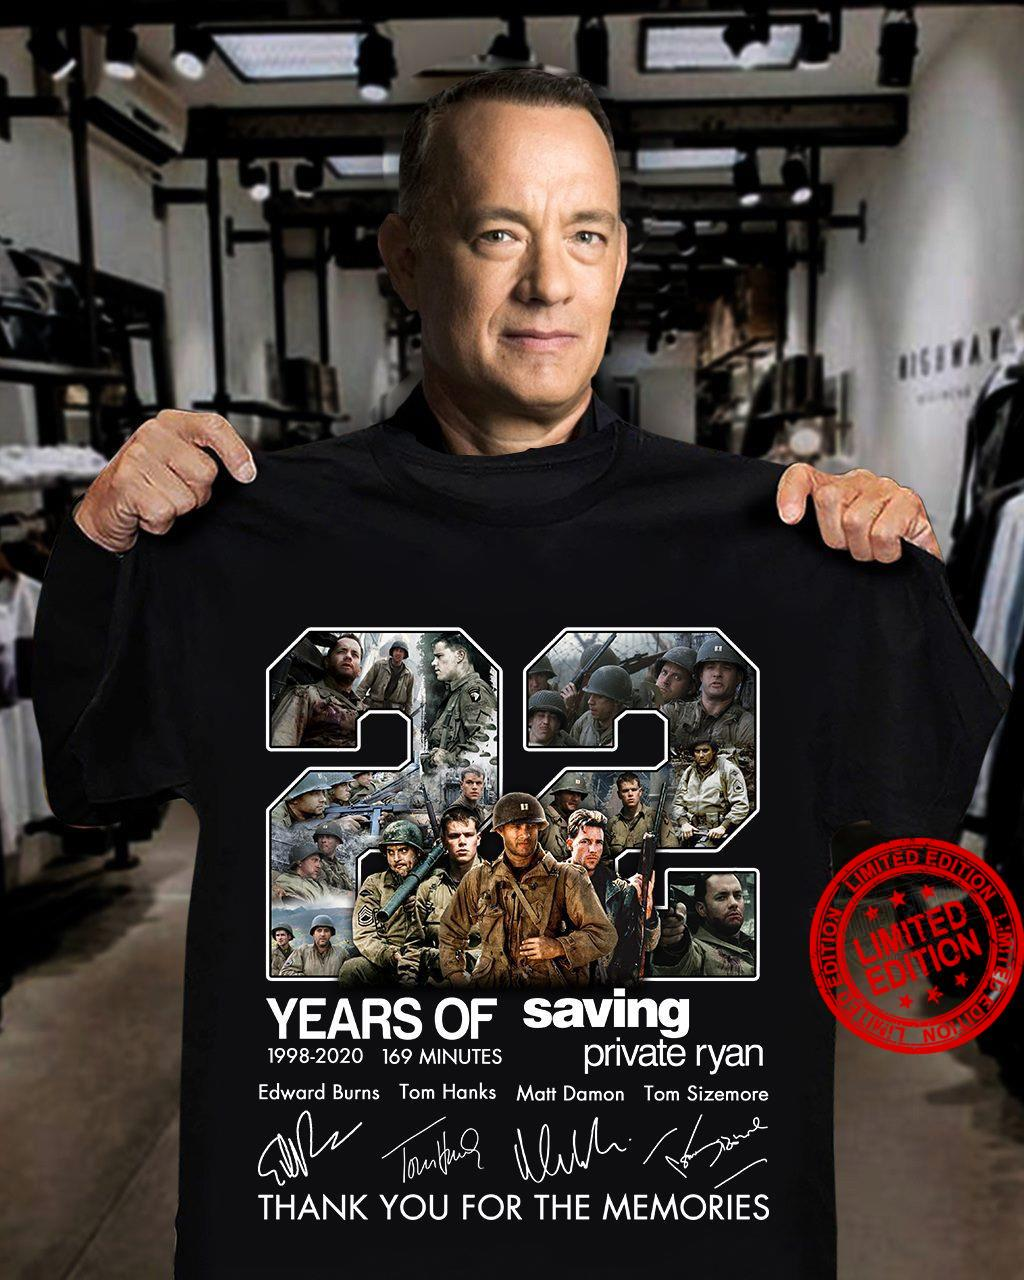 22 Years Of Saving 1998-2020 169 Minutes Private Ryan Thank You For The Memories Shirt